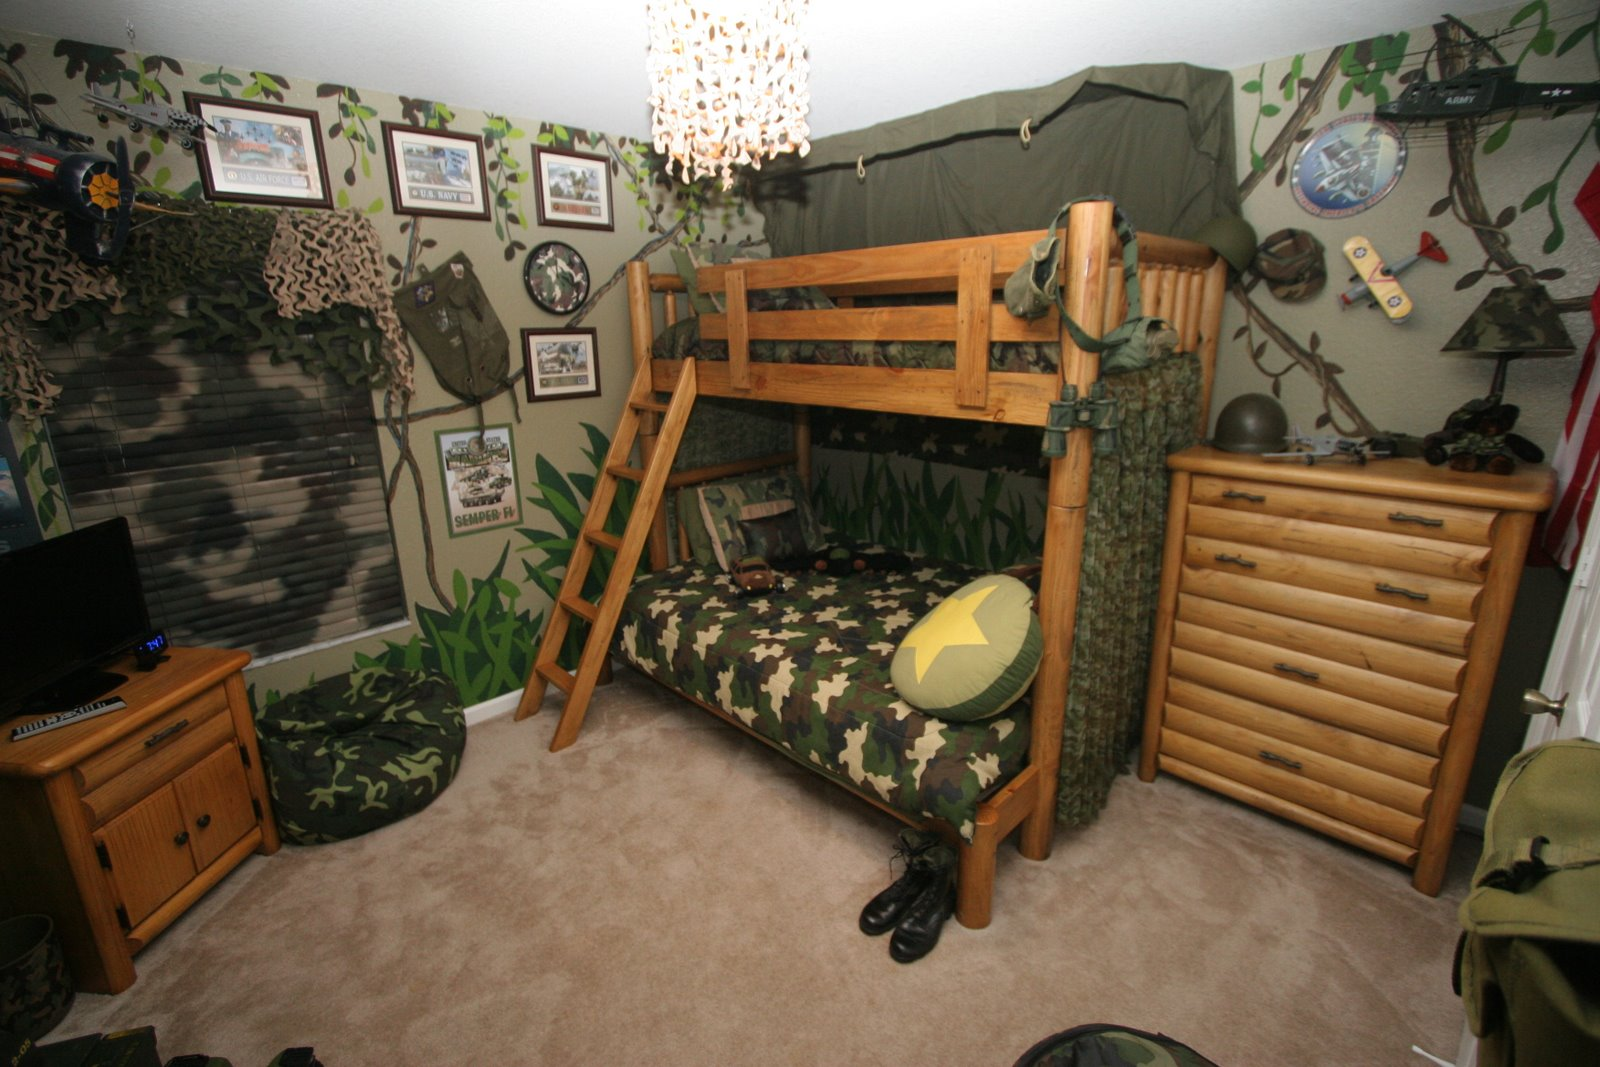 Camouflage boys room with bunk beds interior design ideas for Room design ideas for boy